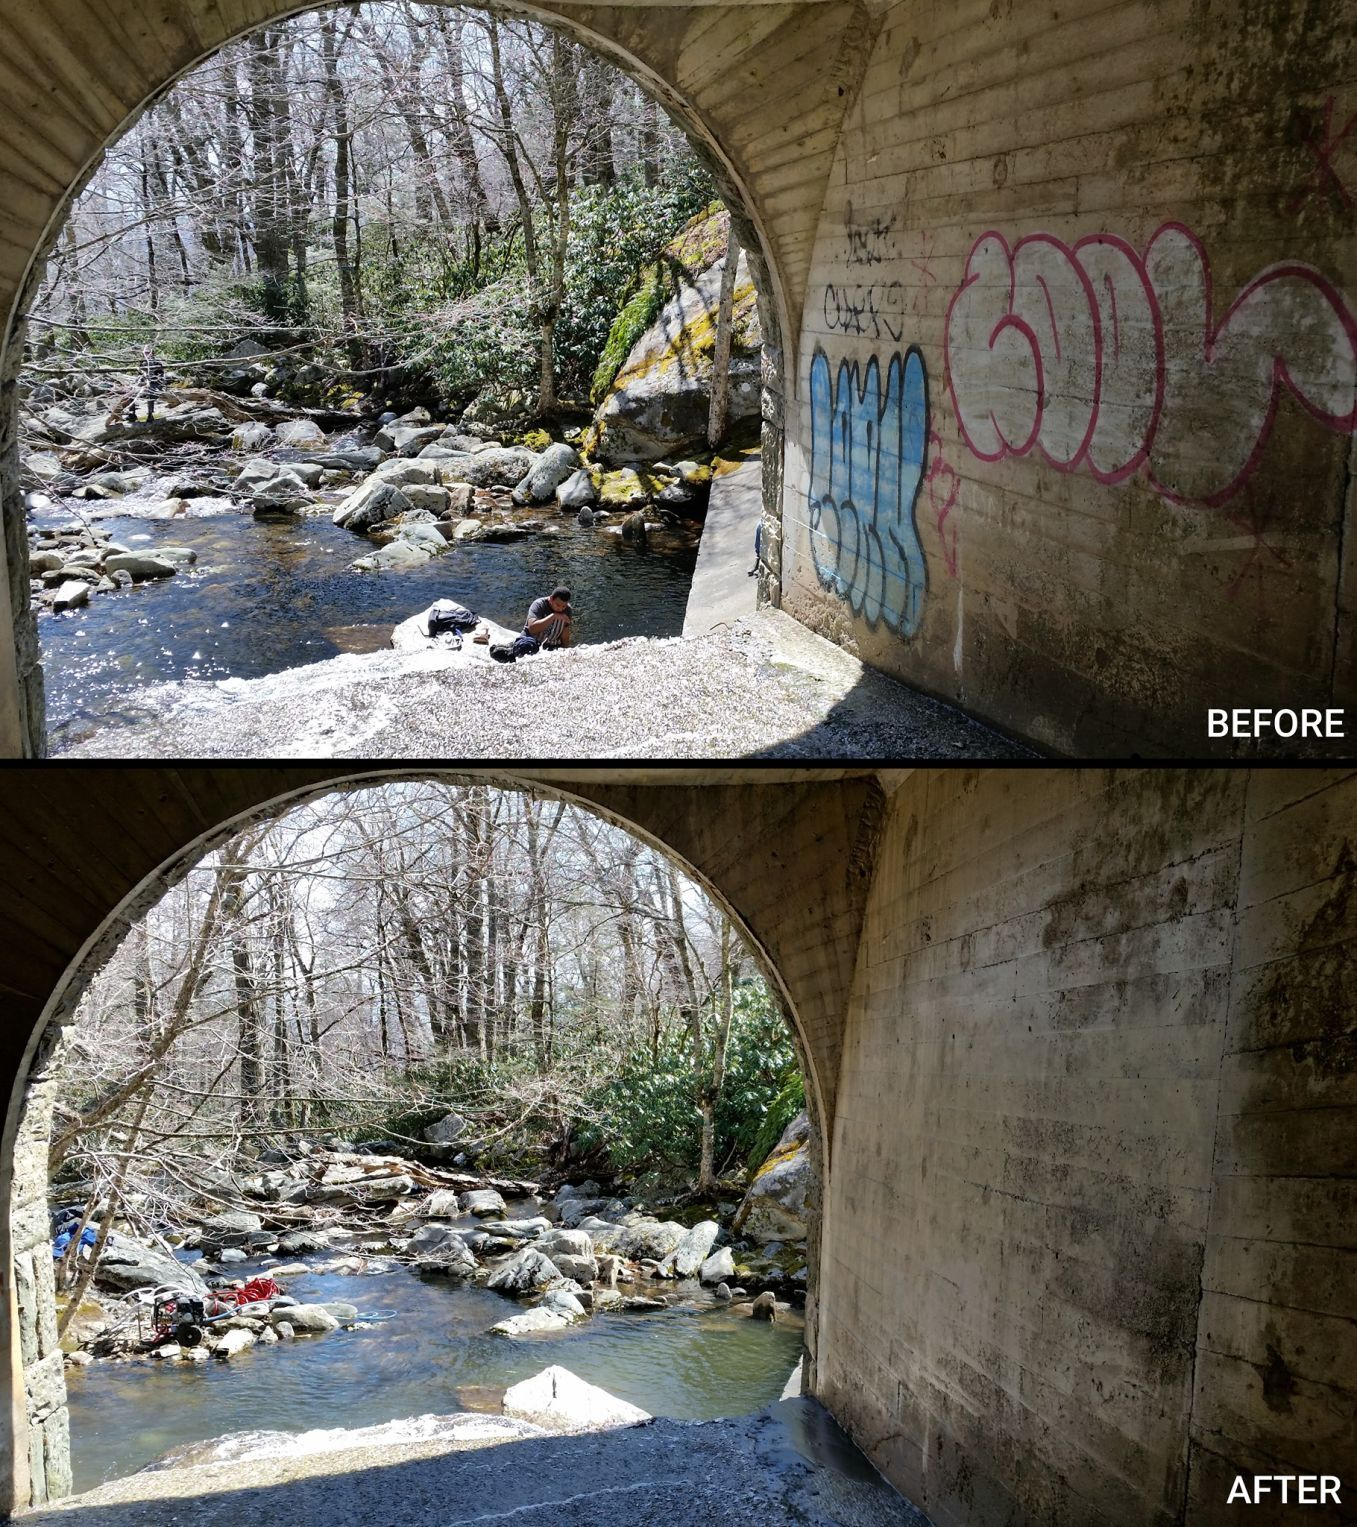 Before and after of tunnel